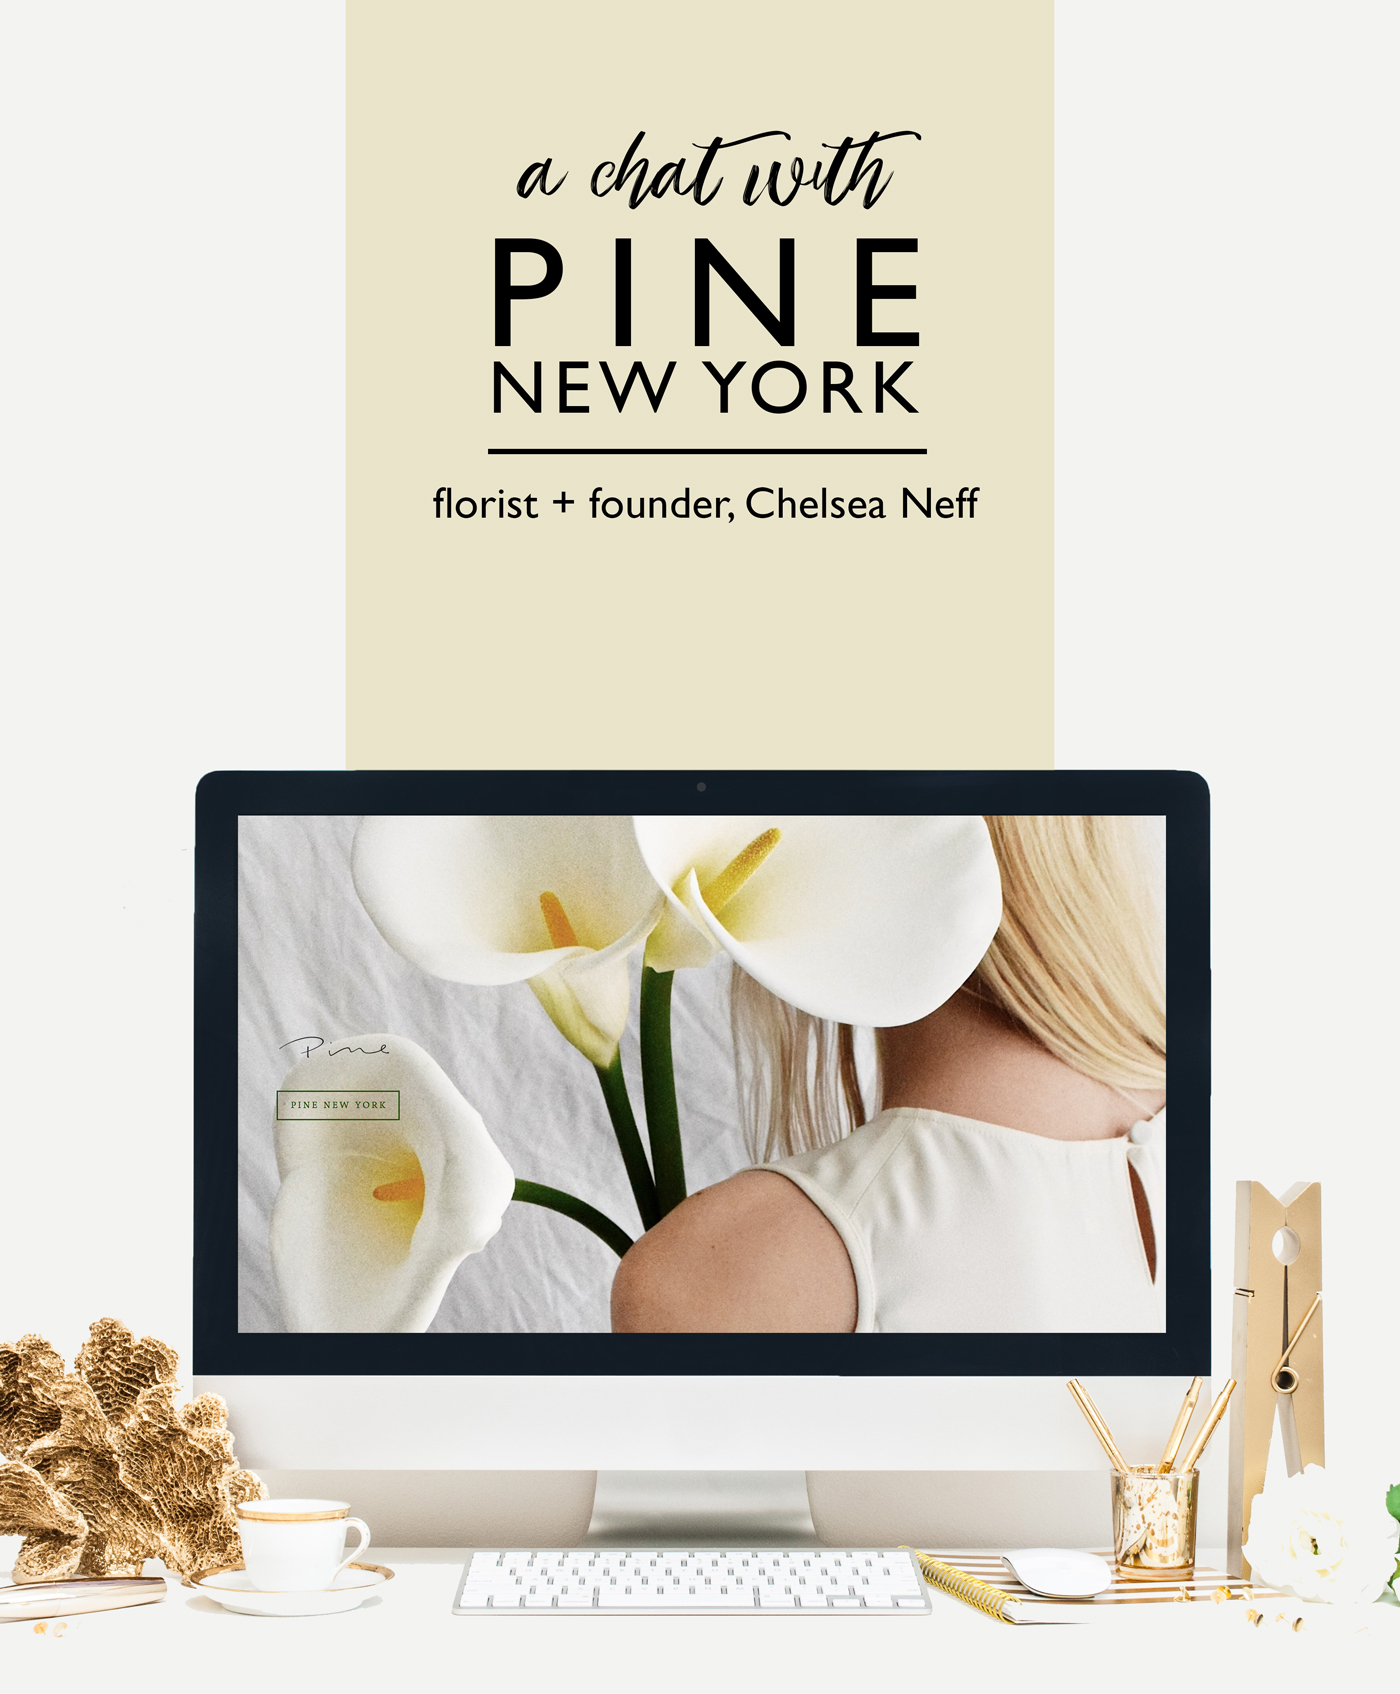 Pine New York | A Chat with Founder + Florist Chelsea Neff